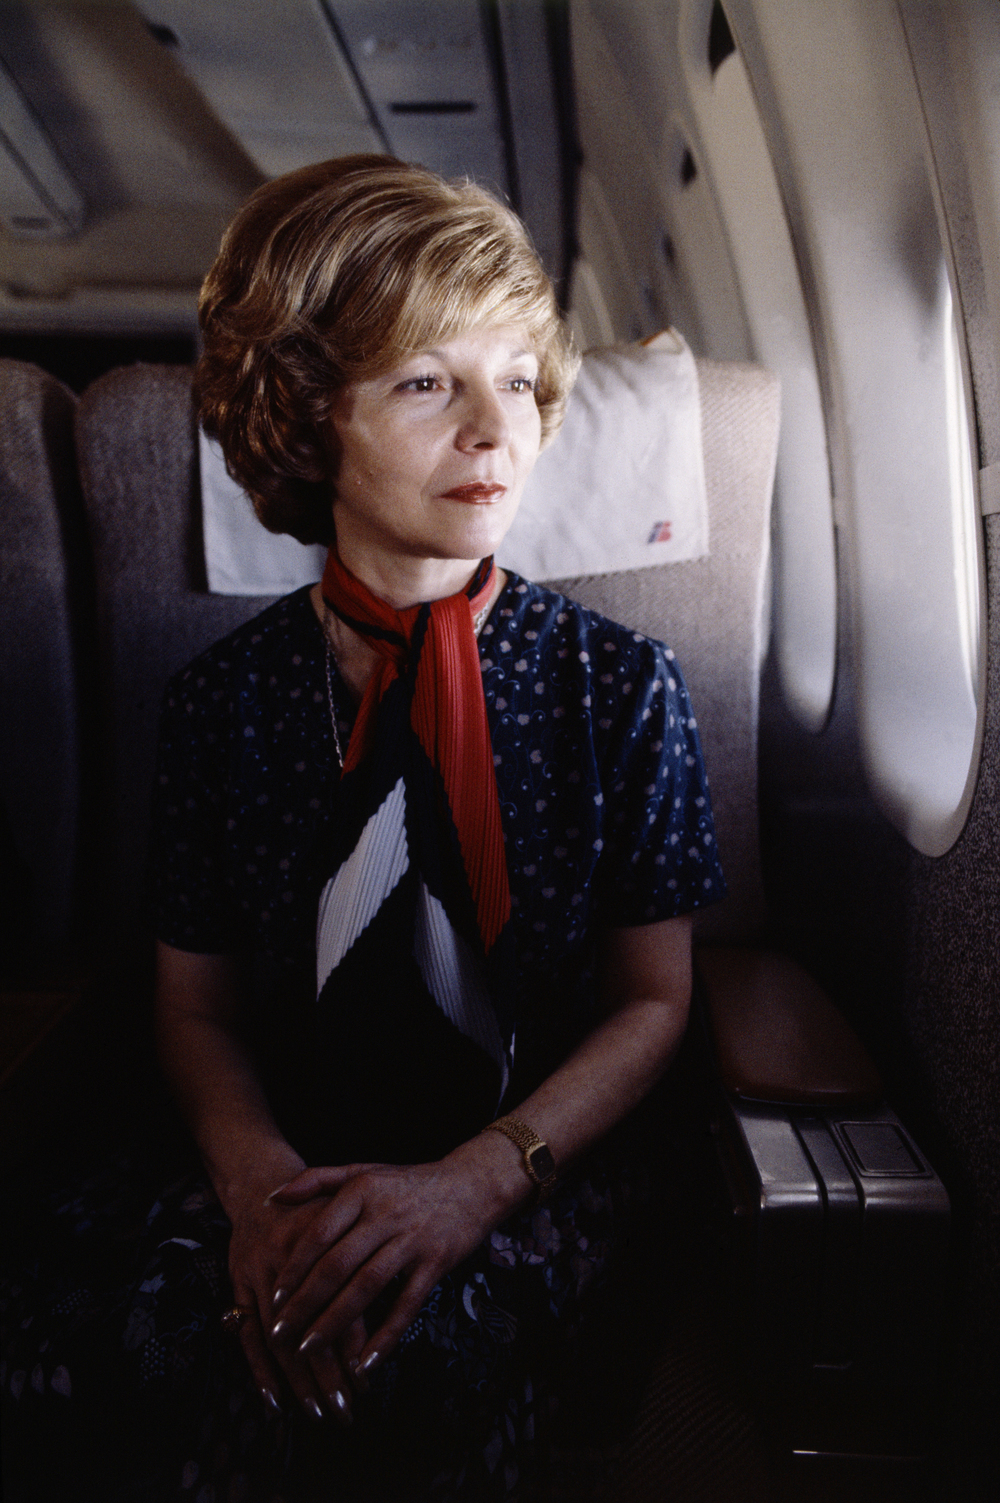 Isabel Perón on the plane leaving Argentina, exiled to Spain, 1981